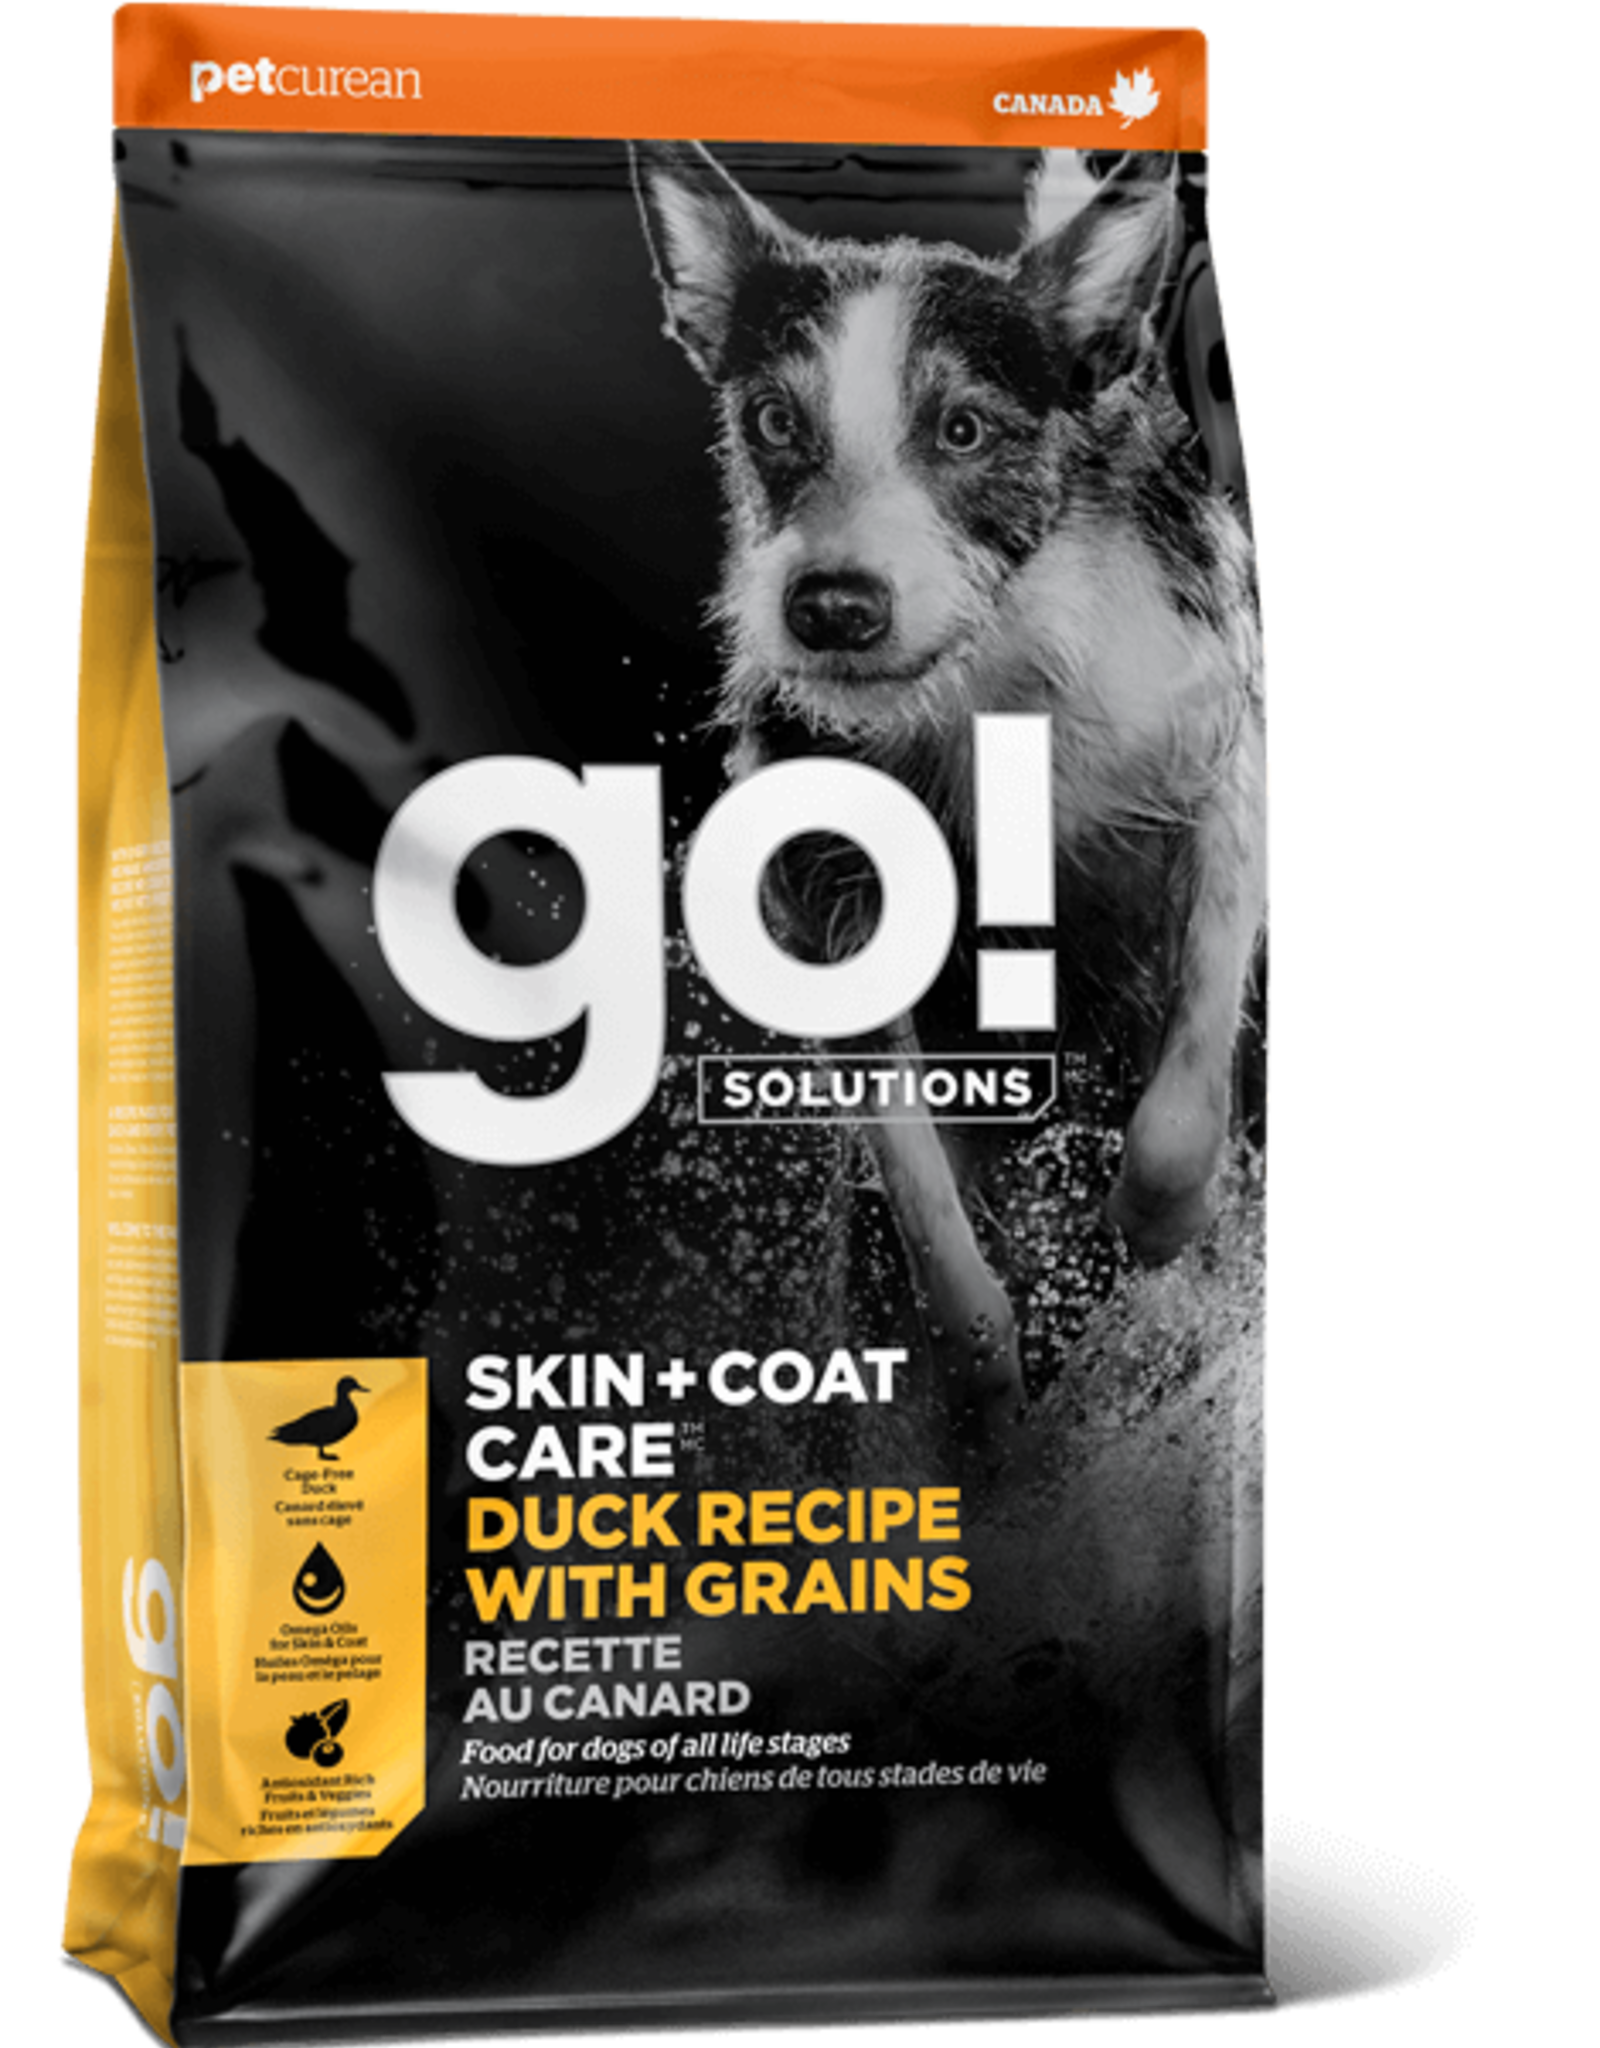 Petcurean GO! SKIN + COAT CARE Duck Recipe With Grains for dogs